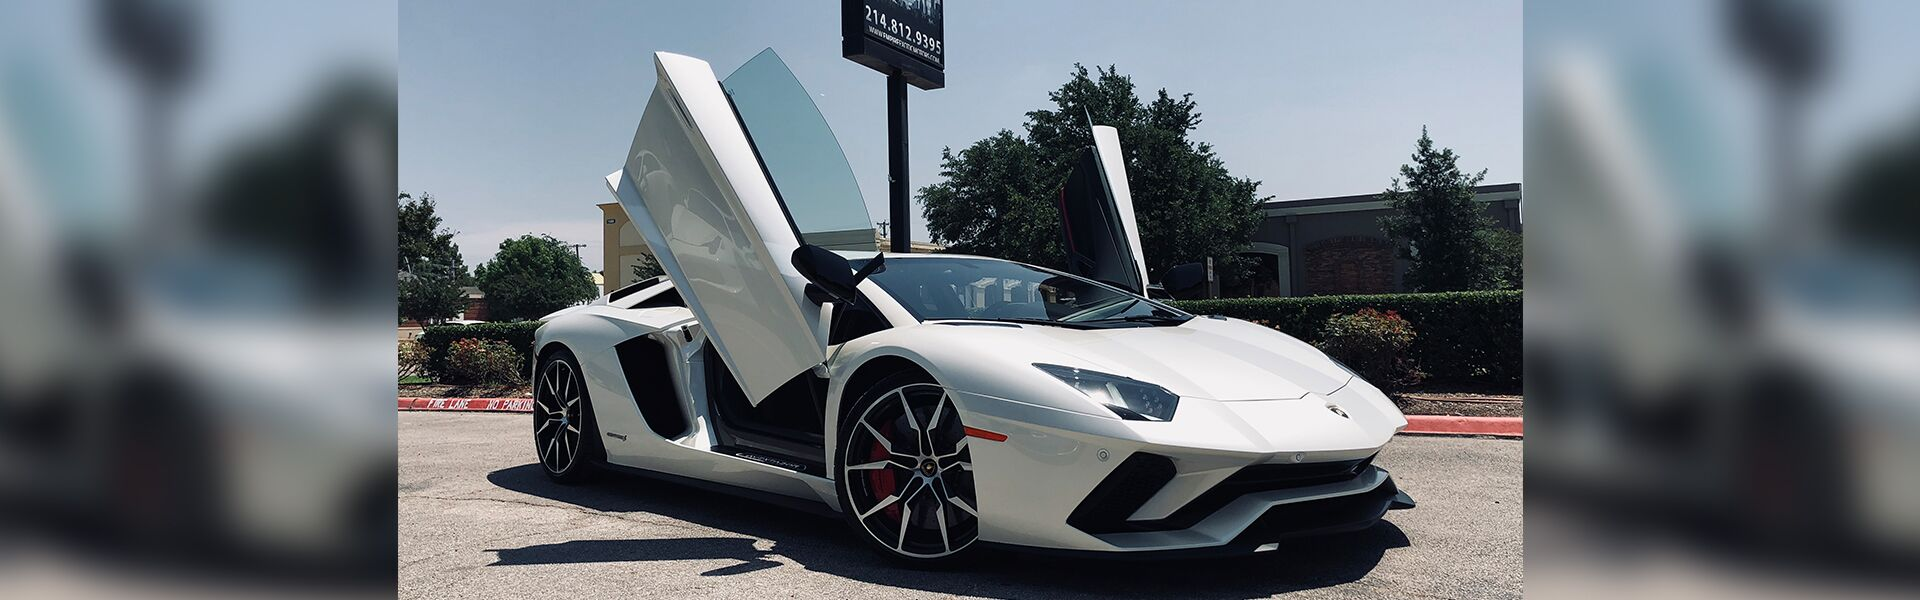 Dealership Addison TX | Used Cars Empire Exotic Motors